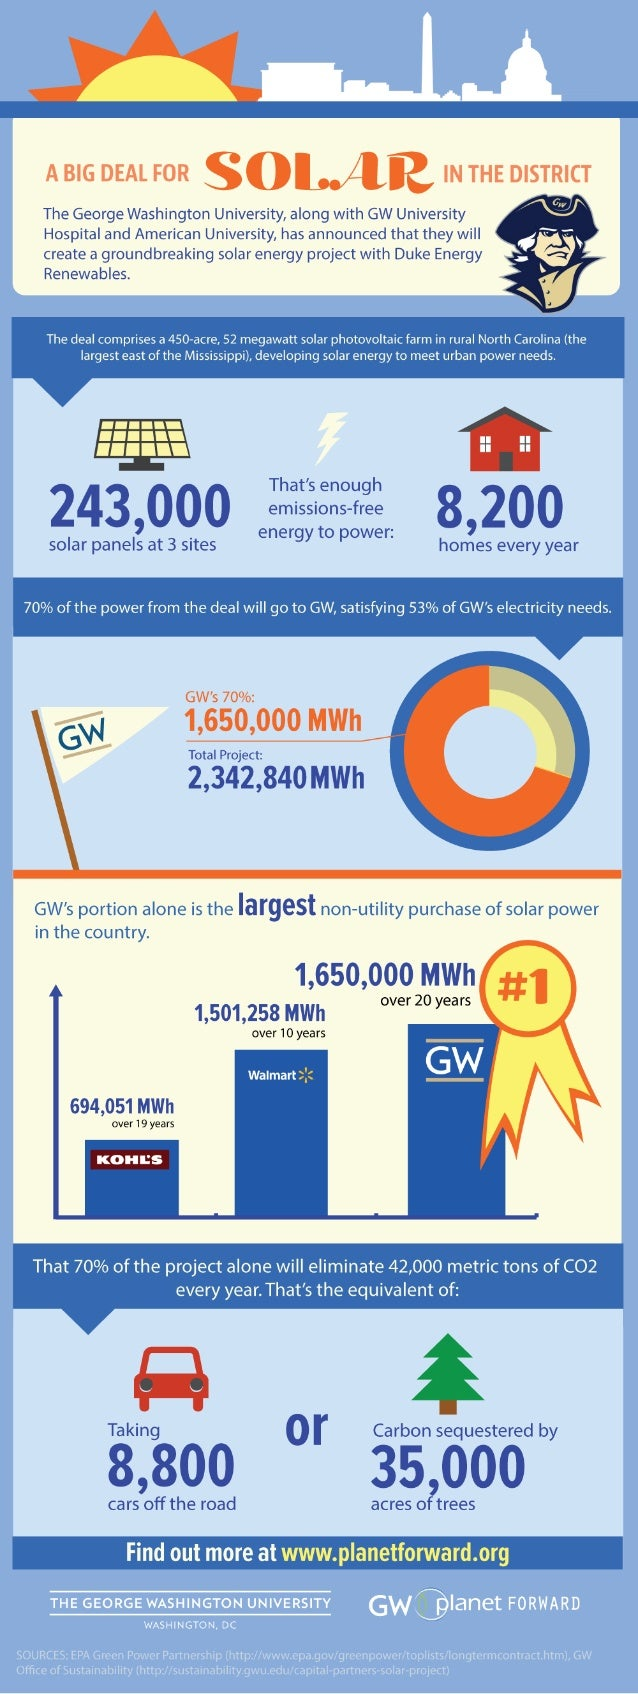 Planet Forward Infographic: A Big Deal for Solar in the District